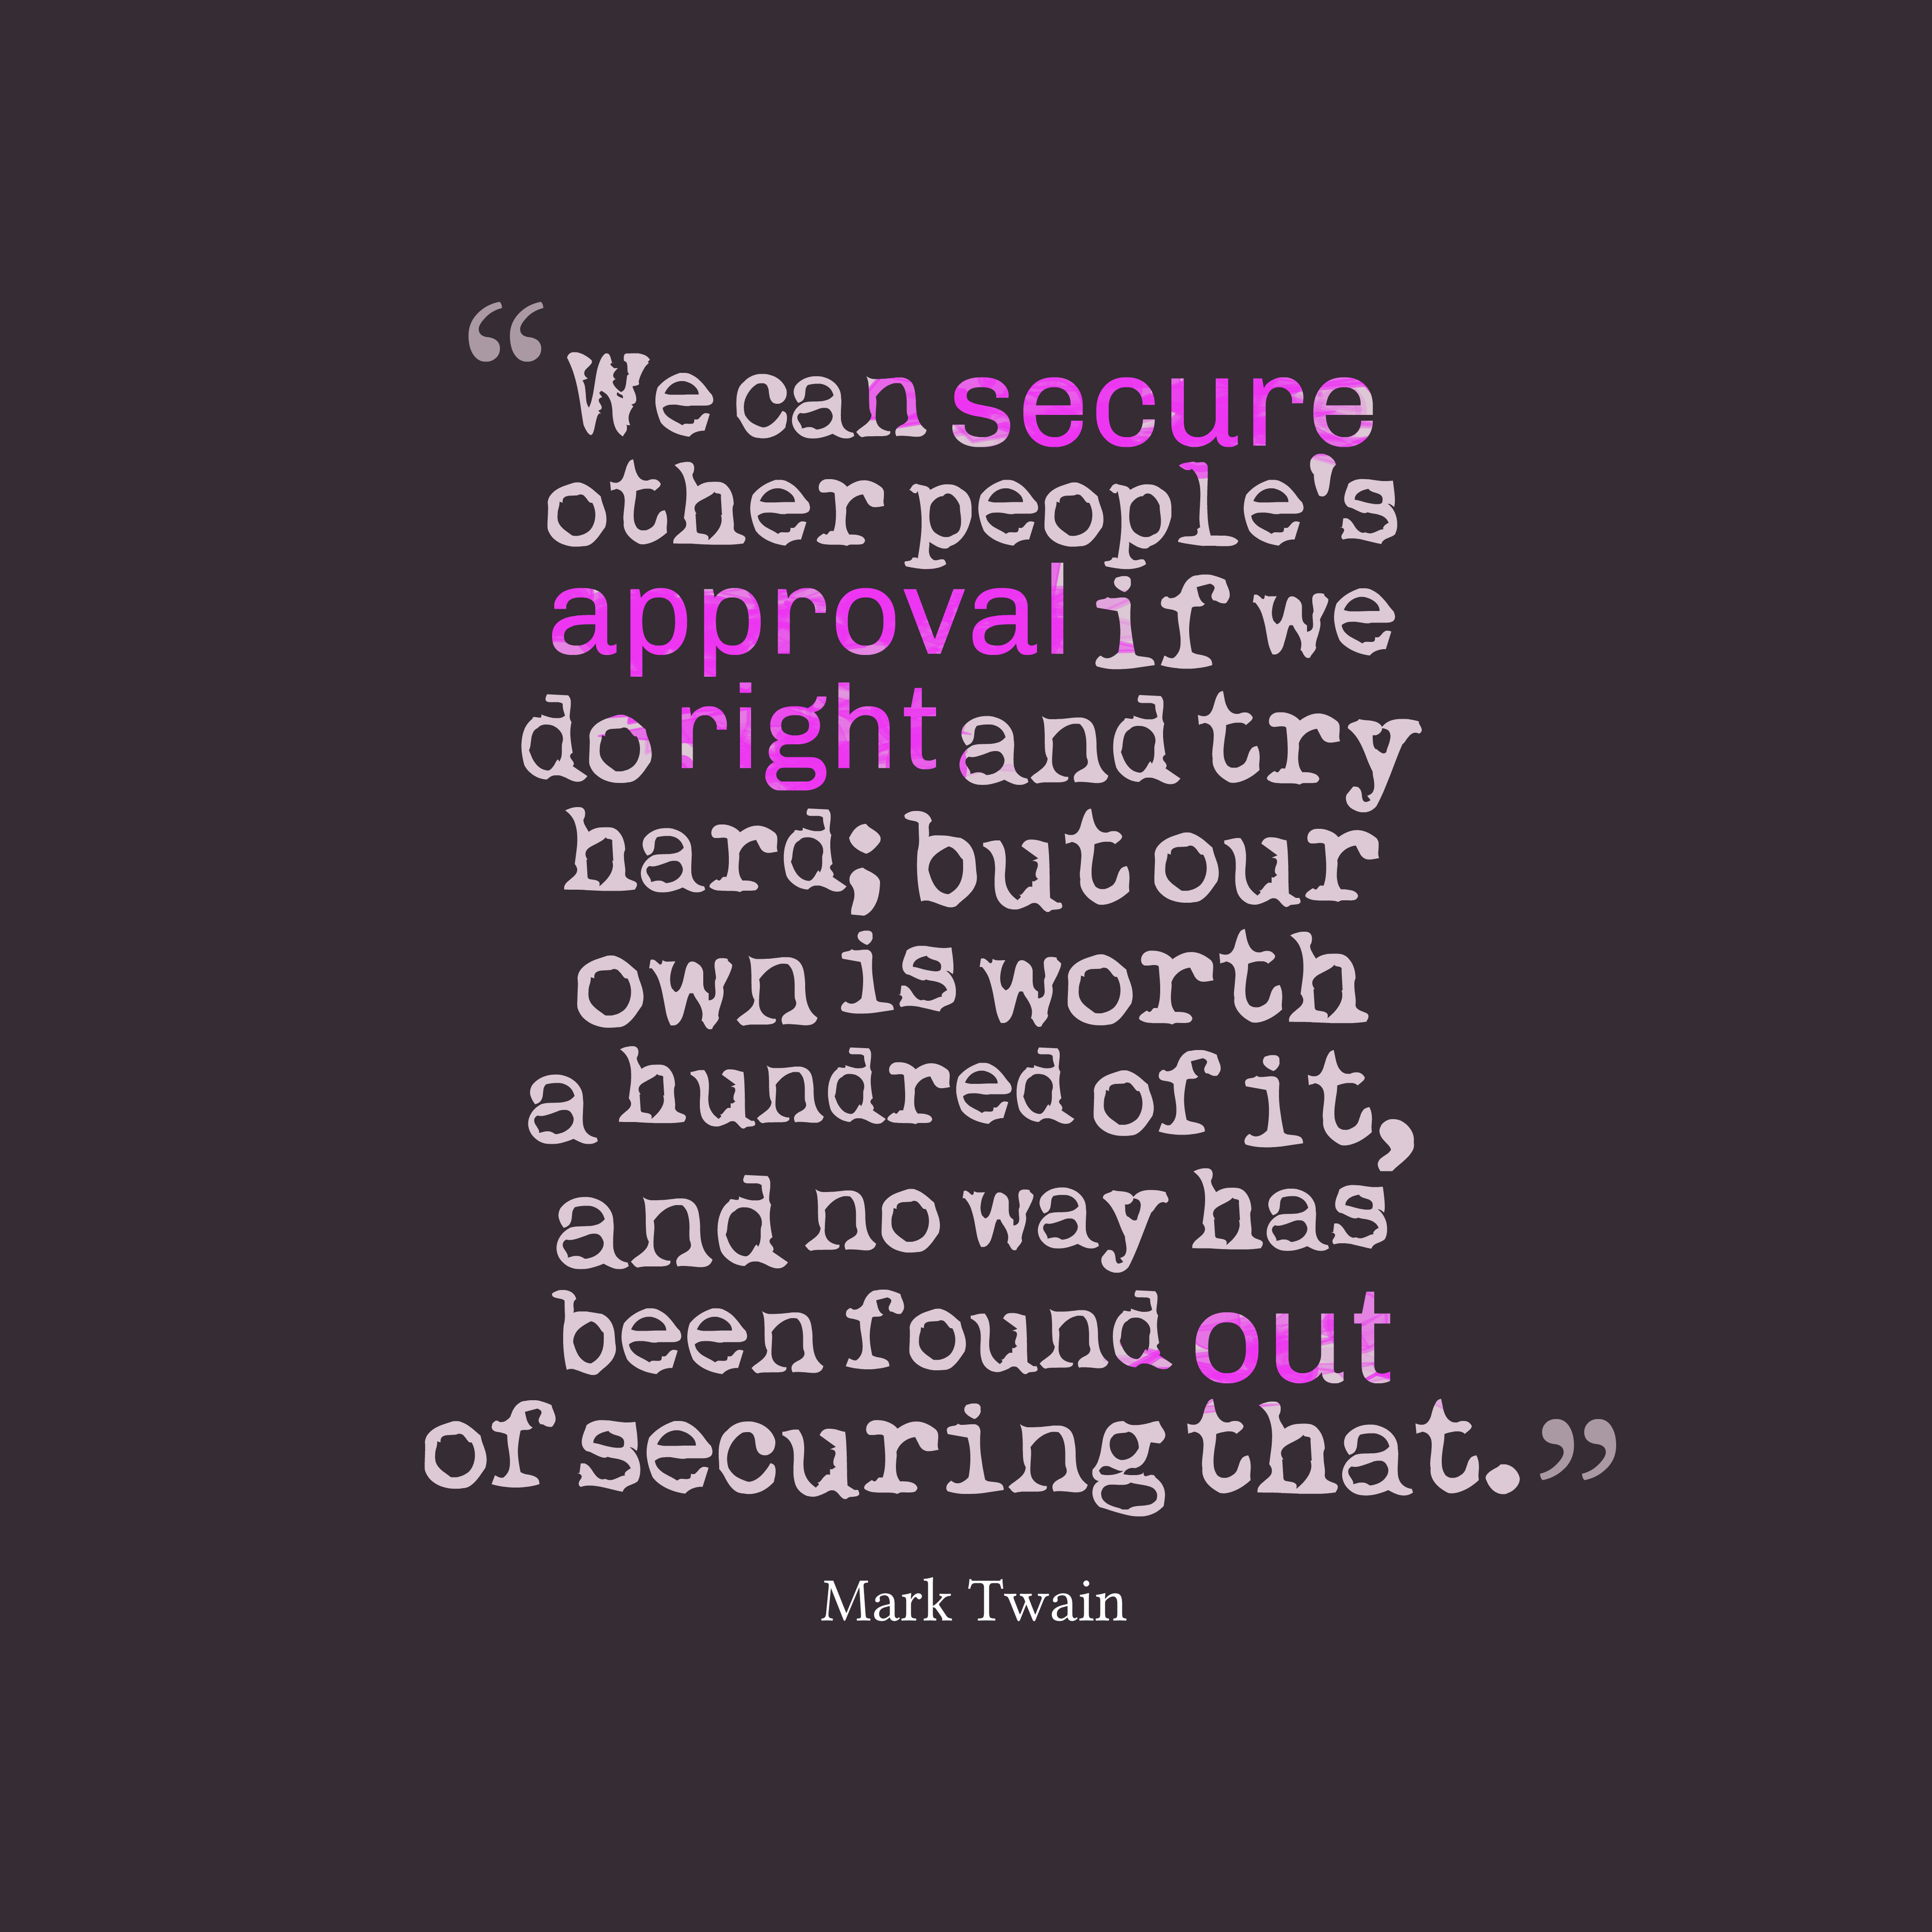 Quotes image of We can secure other people's approval if we do right and try hard; but our own is worth a hundred of it, and no way has been found out of securing that.